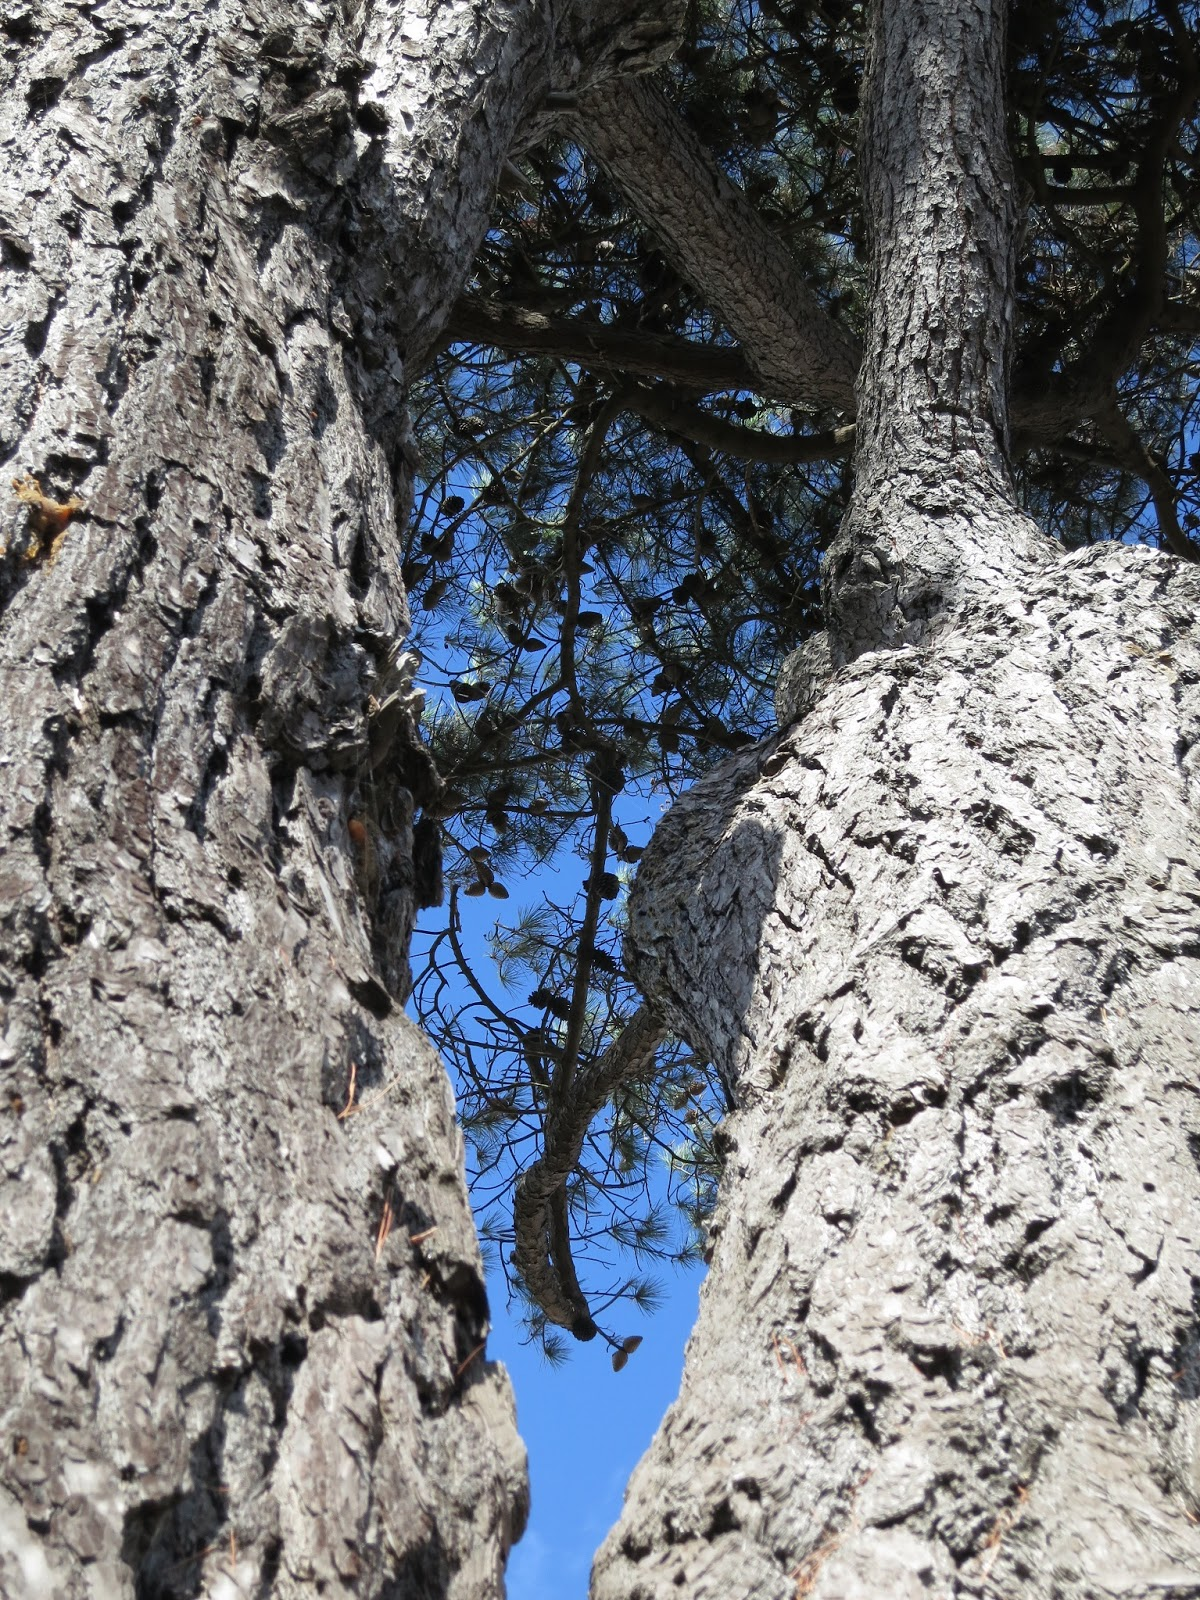 Looking between divided trunk to see cones against a blue sky high and beyond